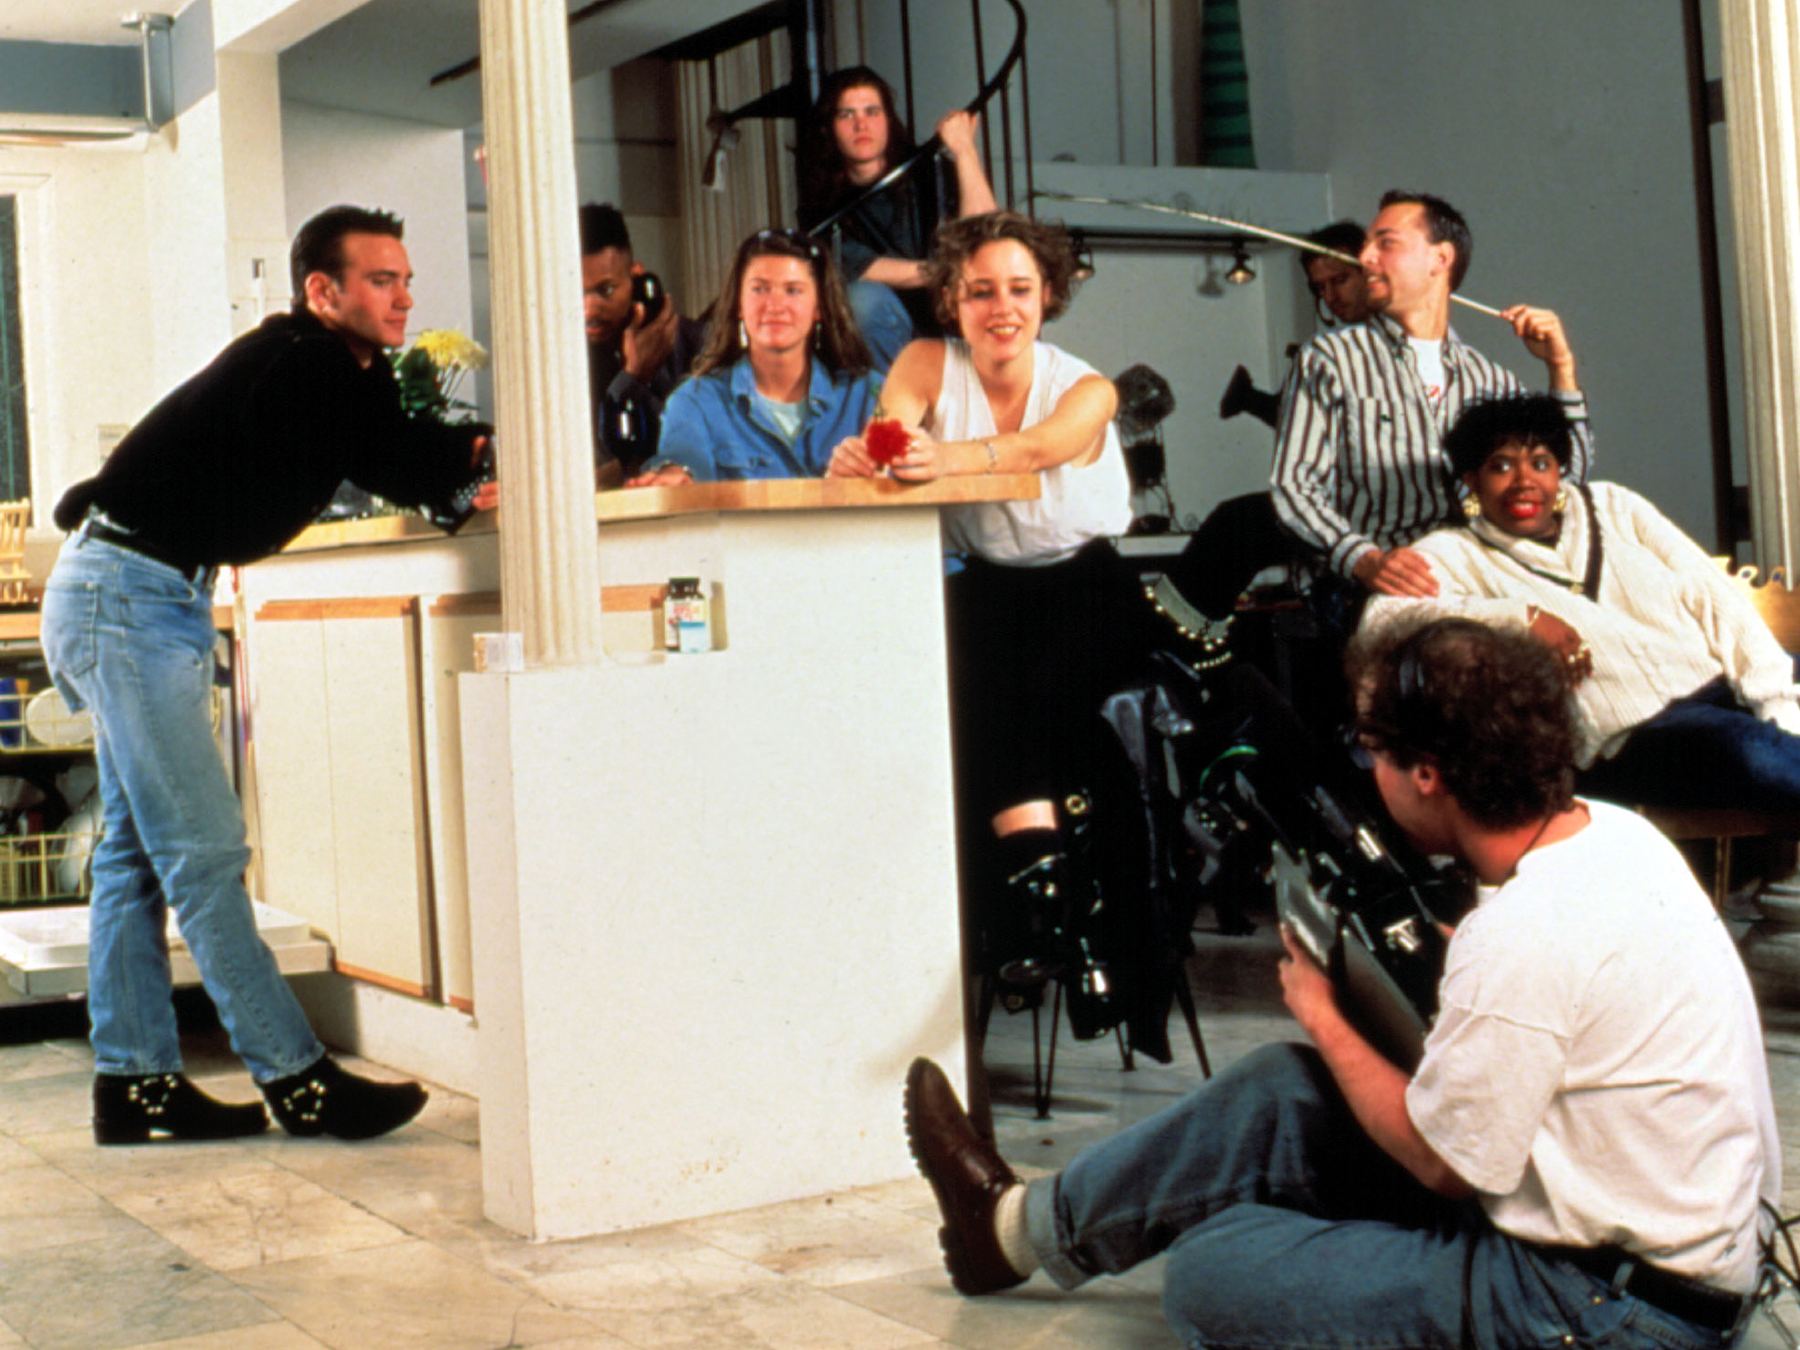 The Original 'Real World: New York' Cast Back for Paramount Plus Reunion Series - Rolling Stone